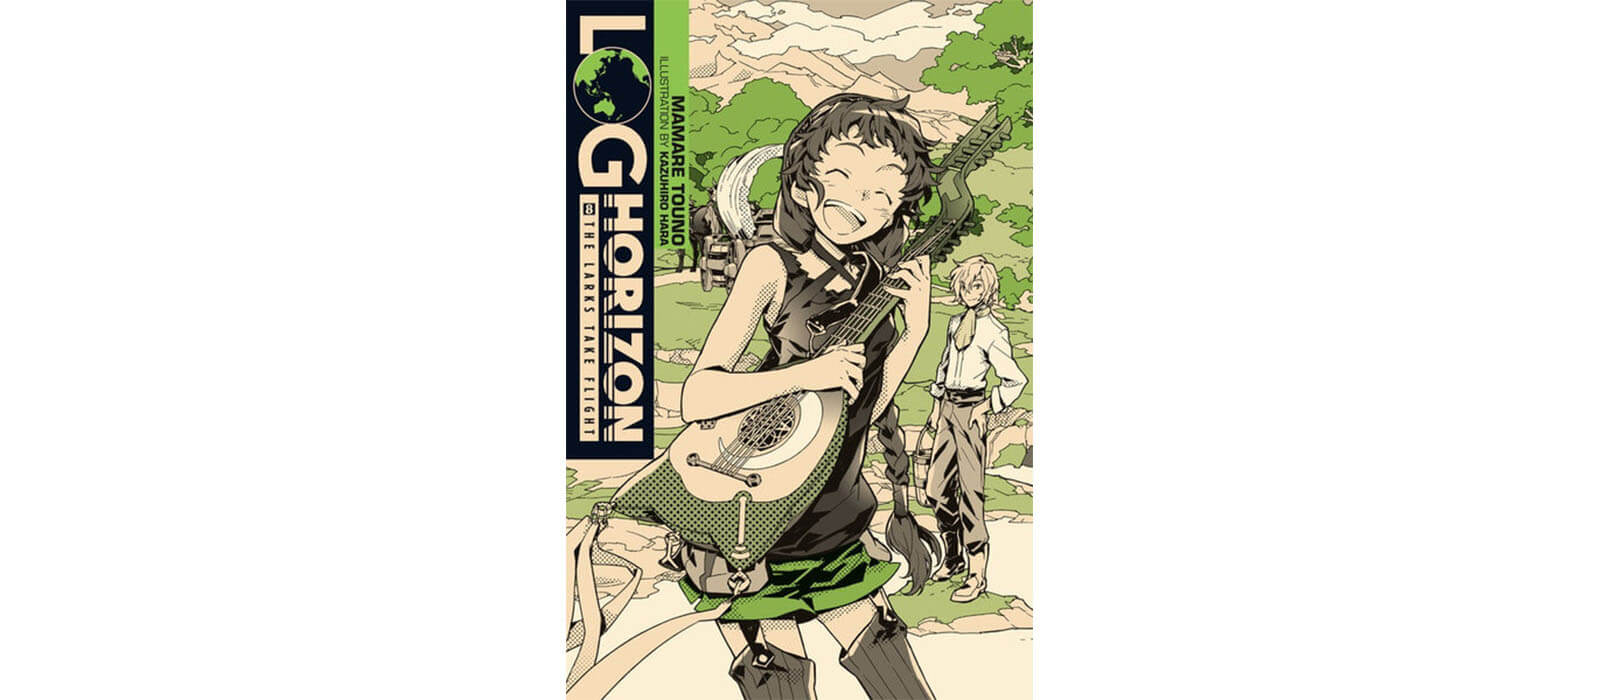 June 2017 Manga Releases - Log Horizon Vol. 8 by Mamare Touno